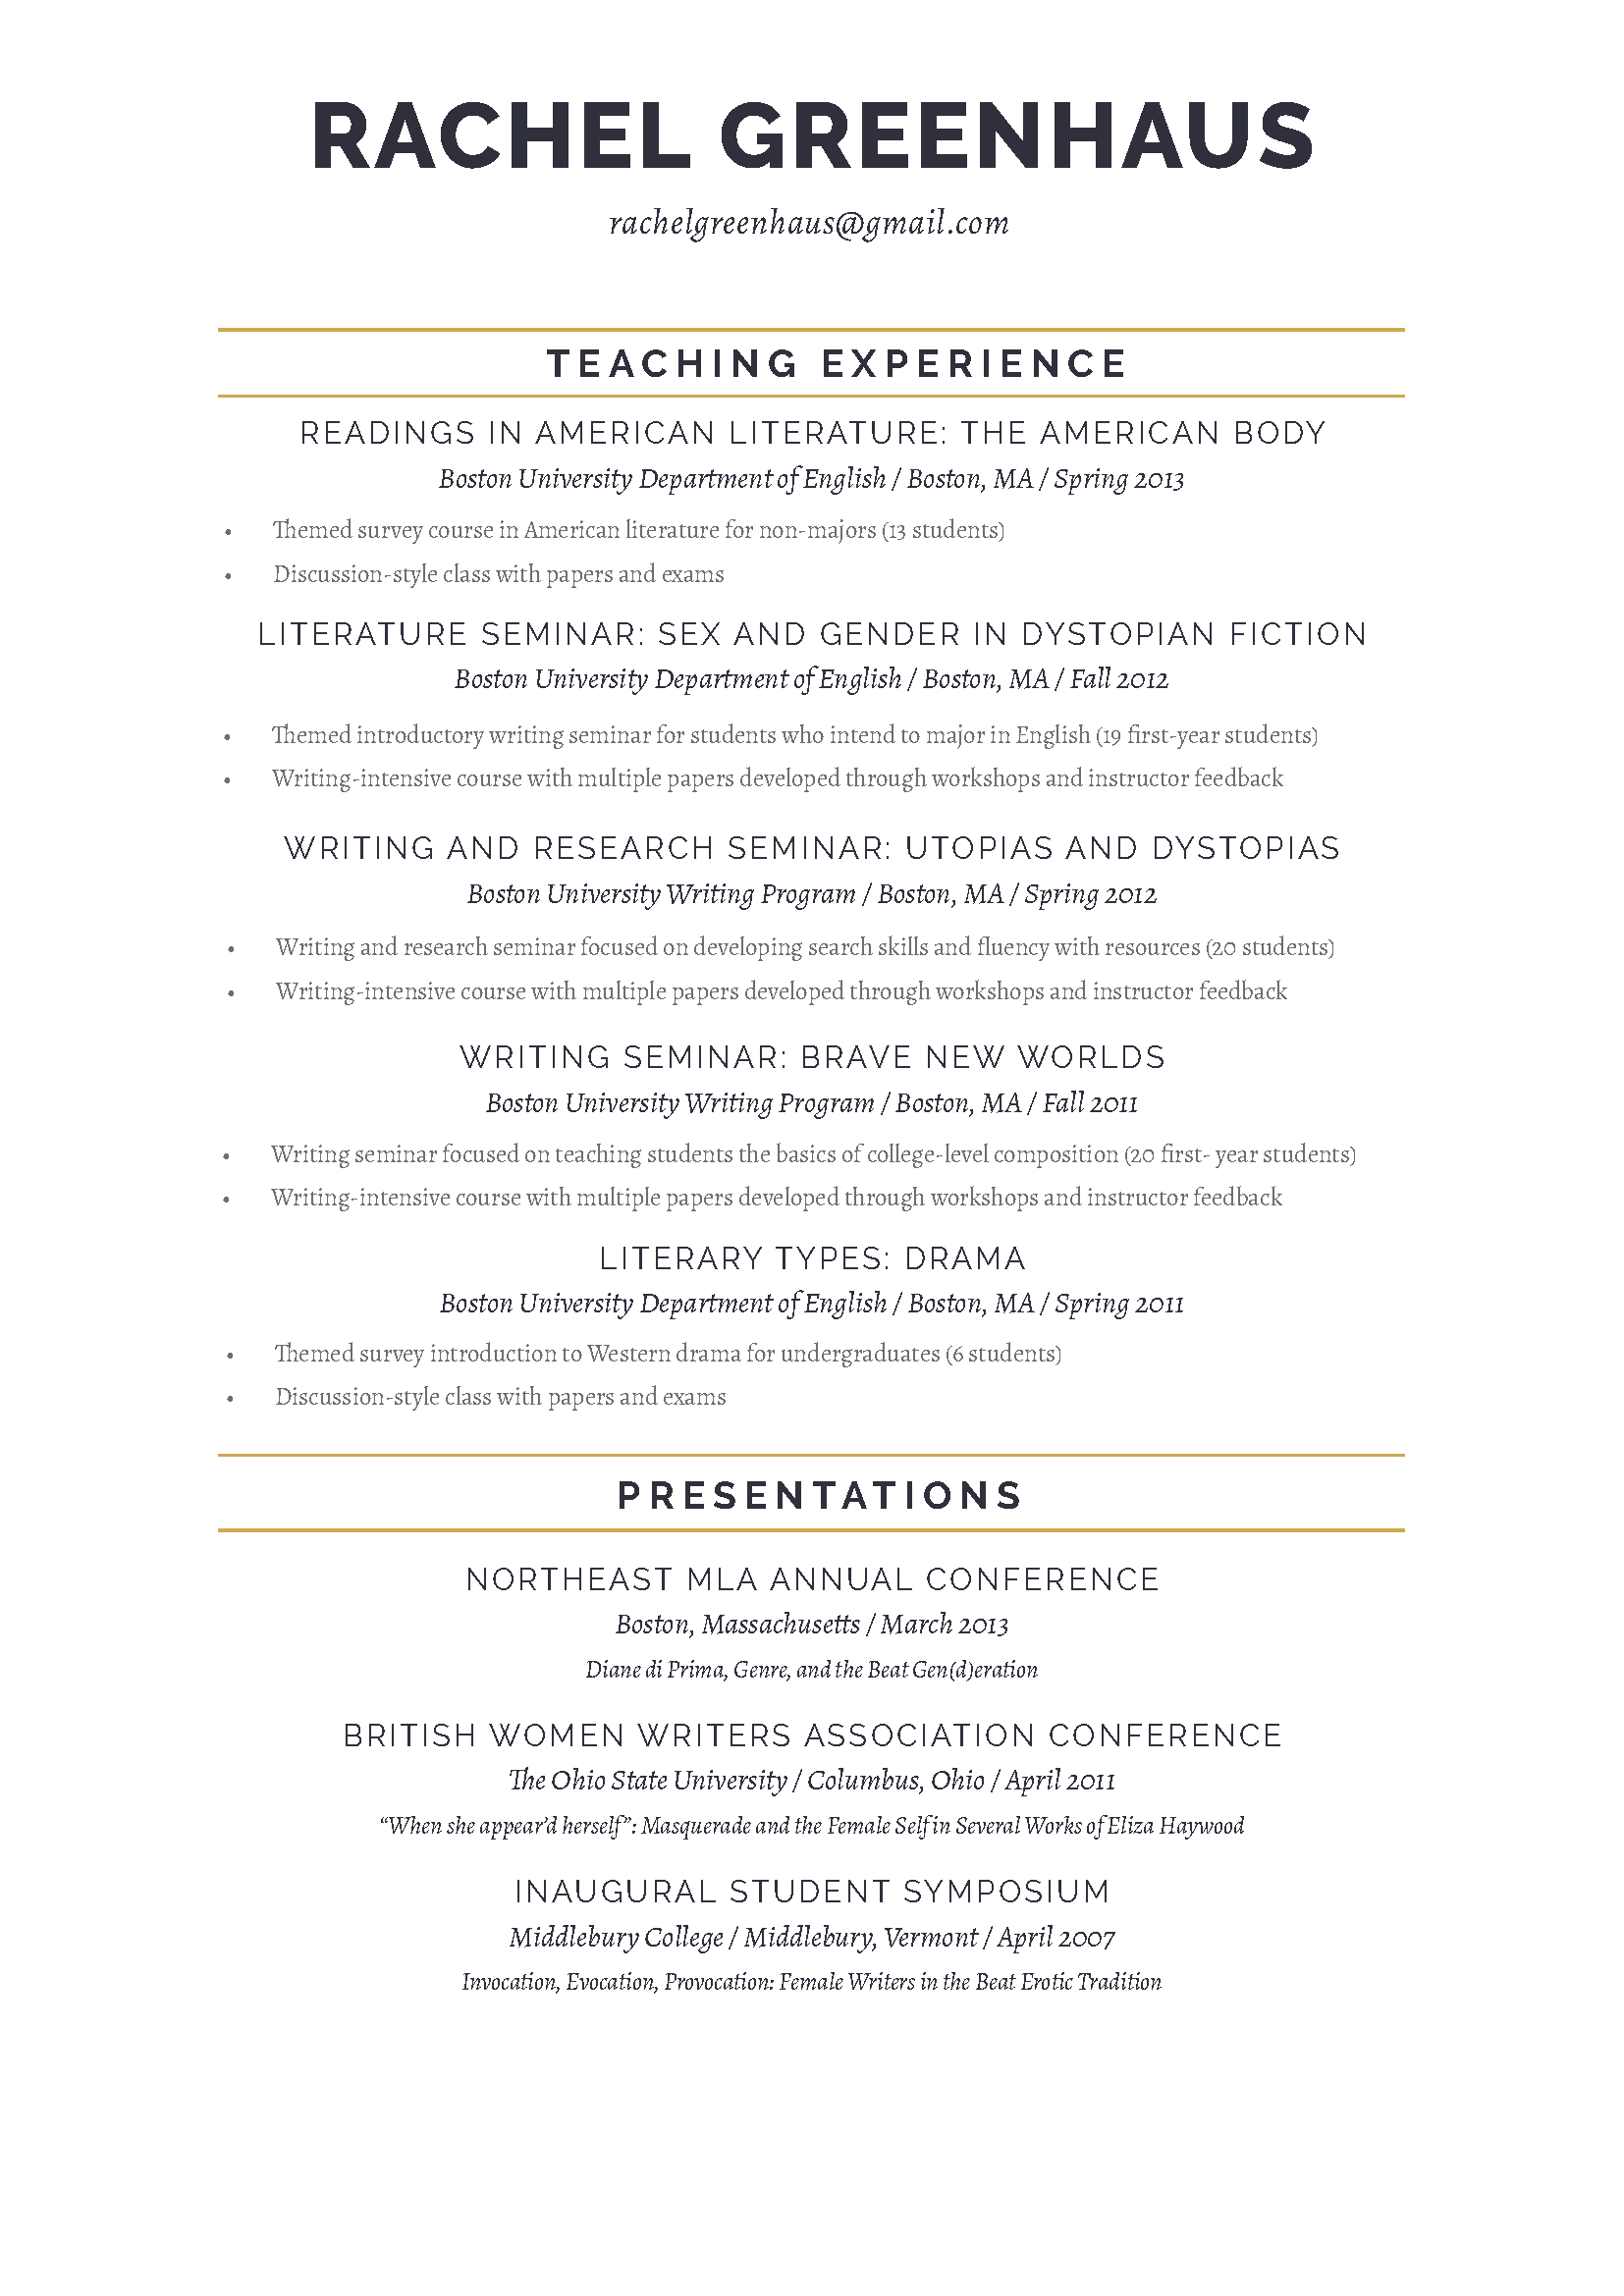 greenhaus cv web draft 5-10-19_Page_2.png